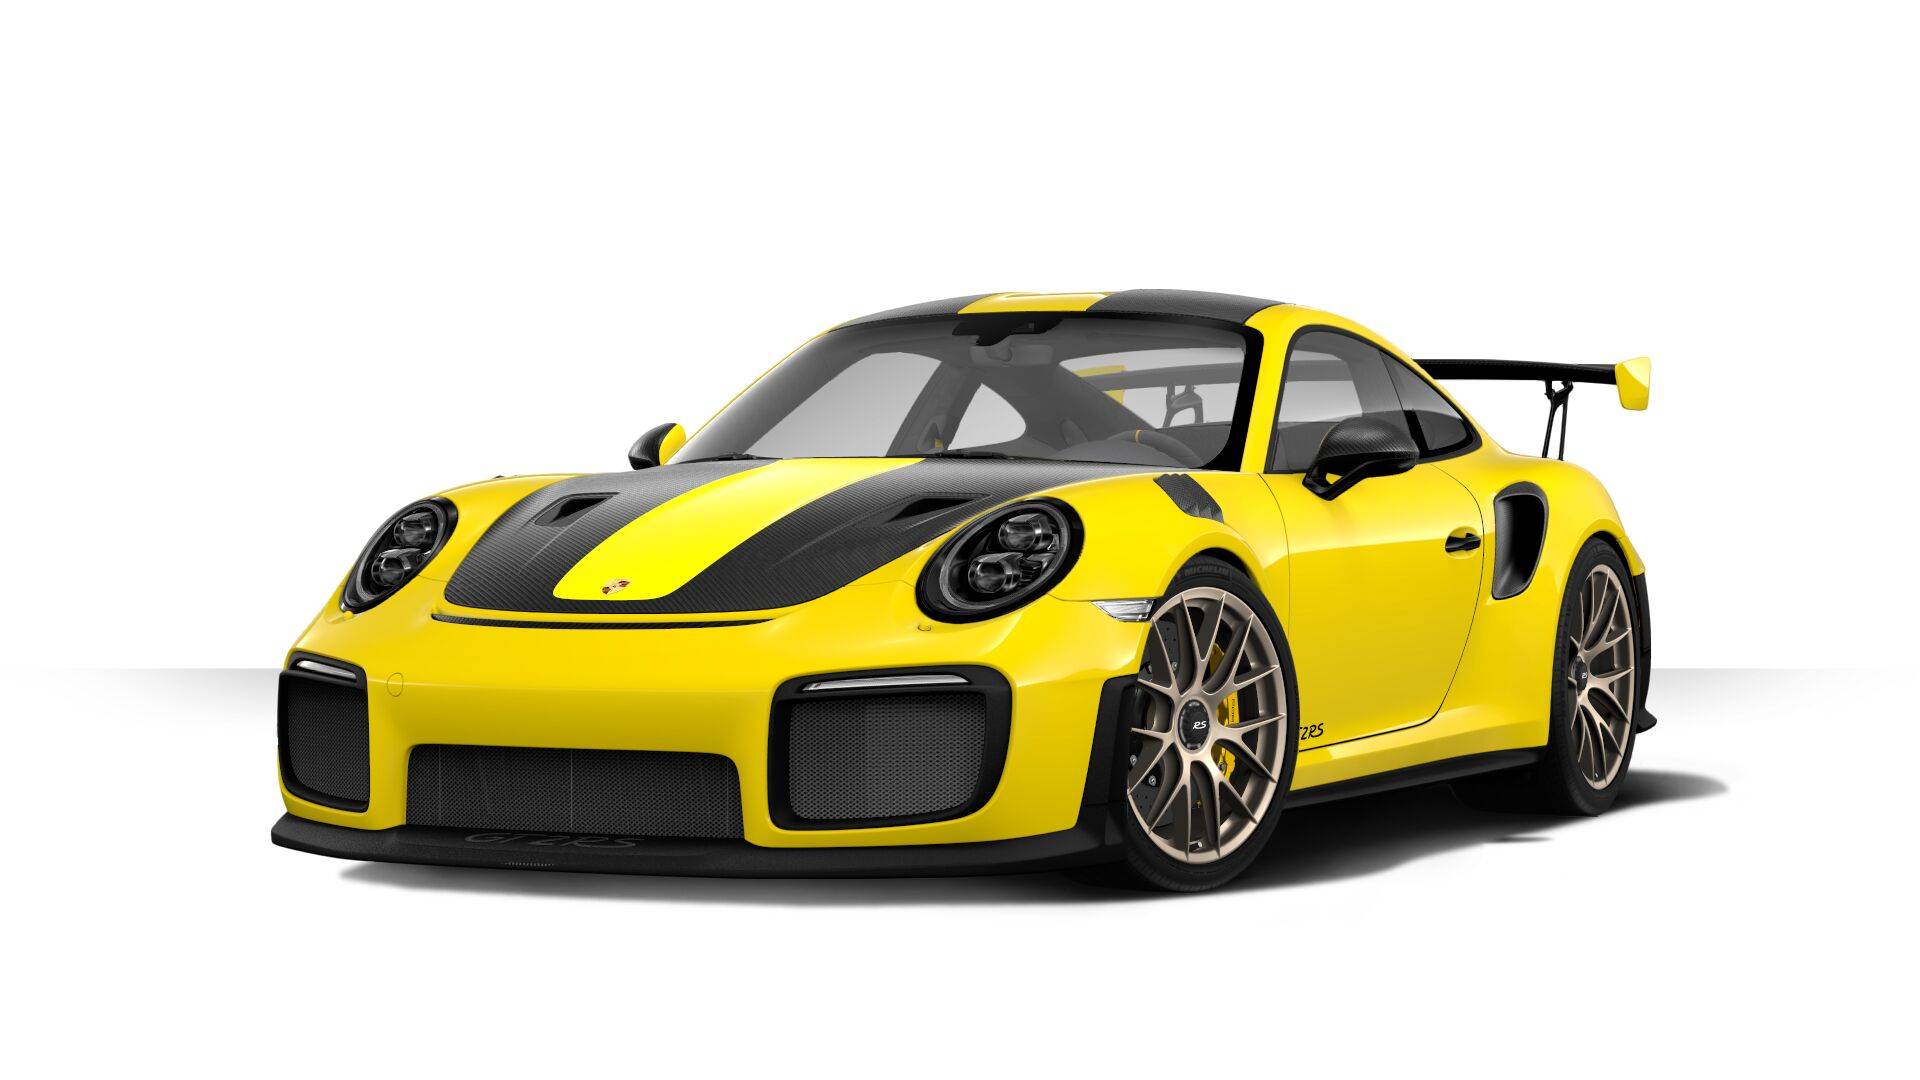 Racing-Yellow-Porsche-911-GT2-RS-1 Interesting Porsche 911 Gt2 and Gt3 Cars Trend